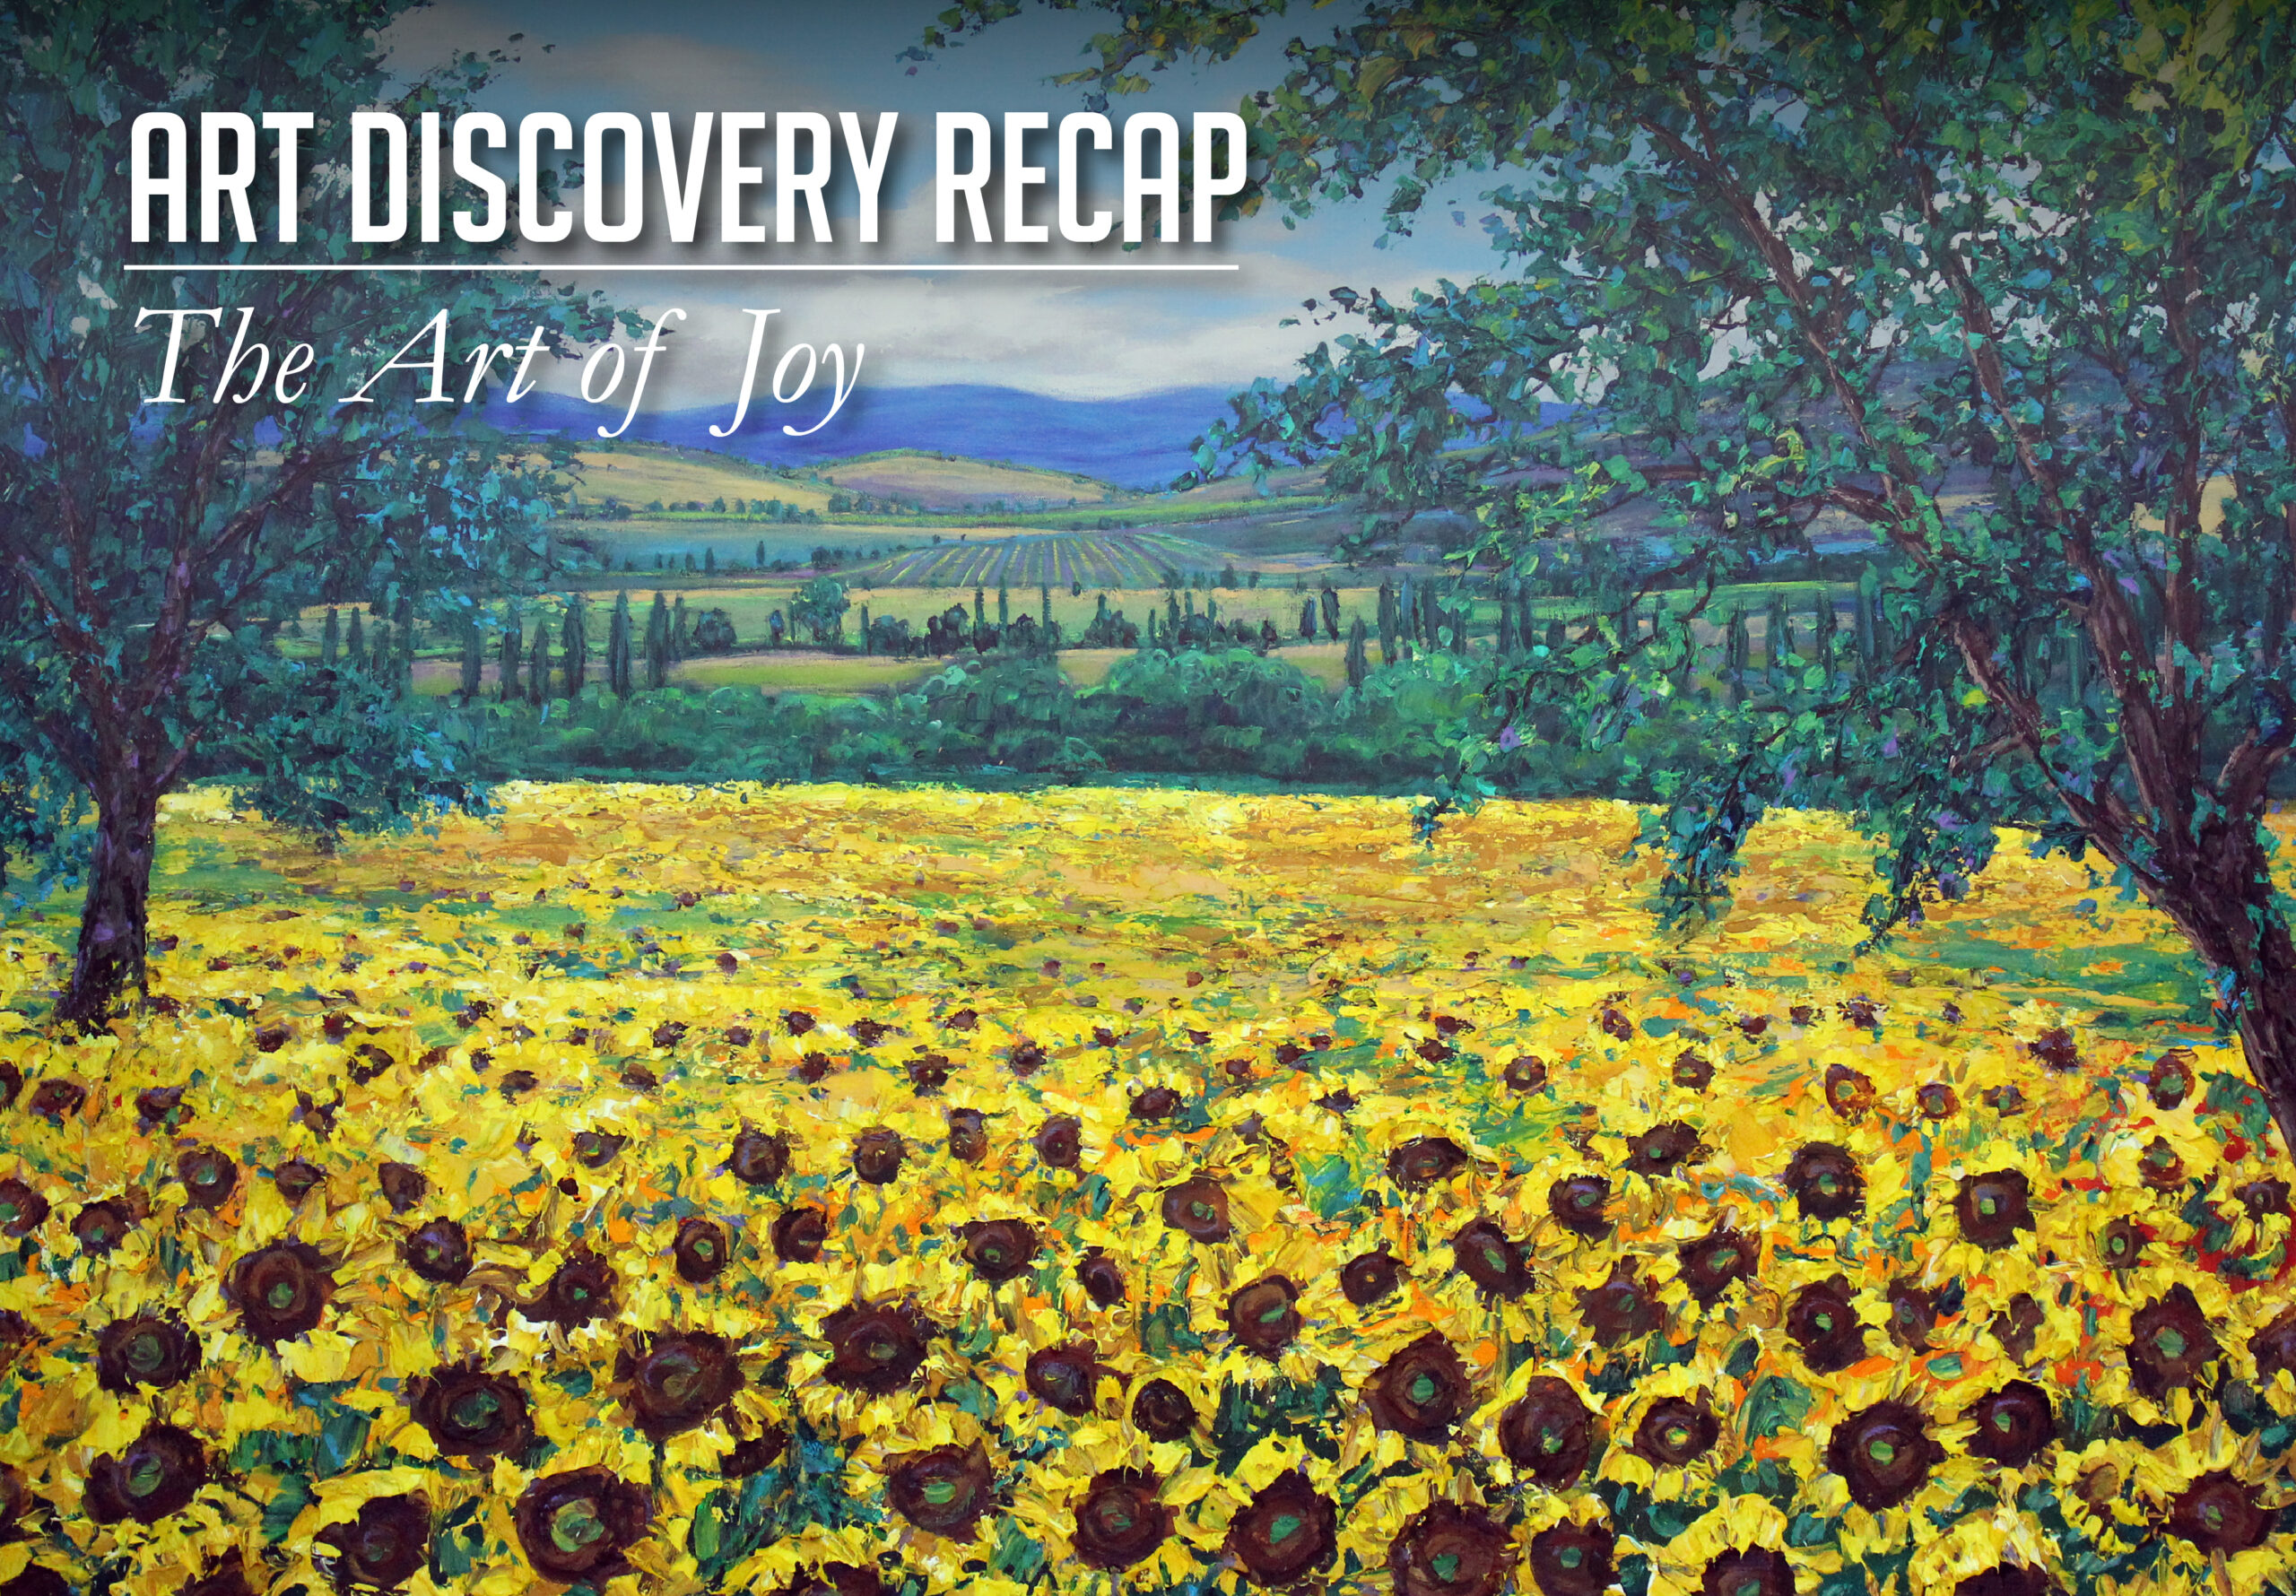 Art Discovery Recap - The Art of Joy Blog Feature